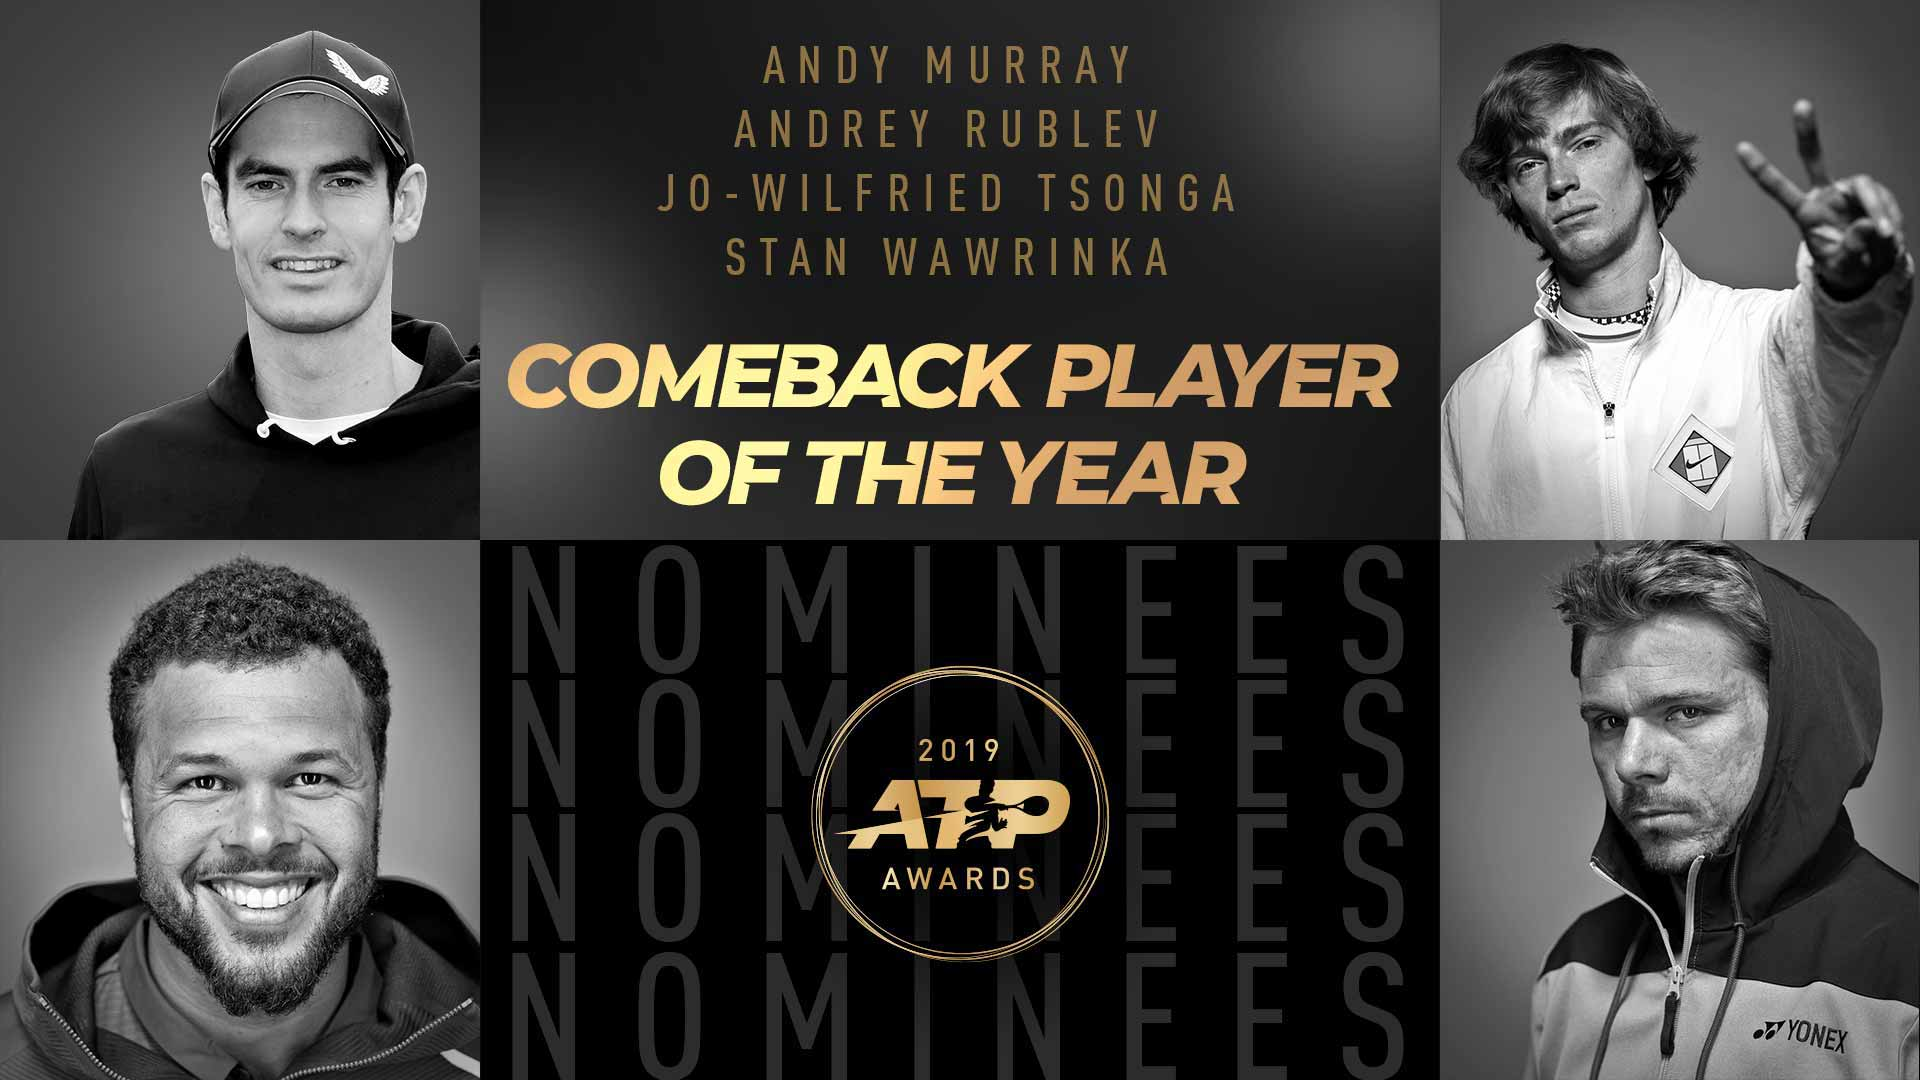 Andy Murray, Andrey Rublev, Jo-Wilfried Tsonga and Stan Wawrinka have been nominated for Comeback Player of the Year in the 2019 ATP Awards.